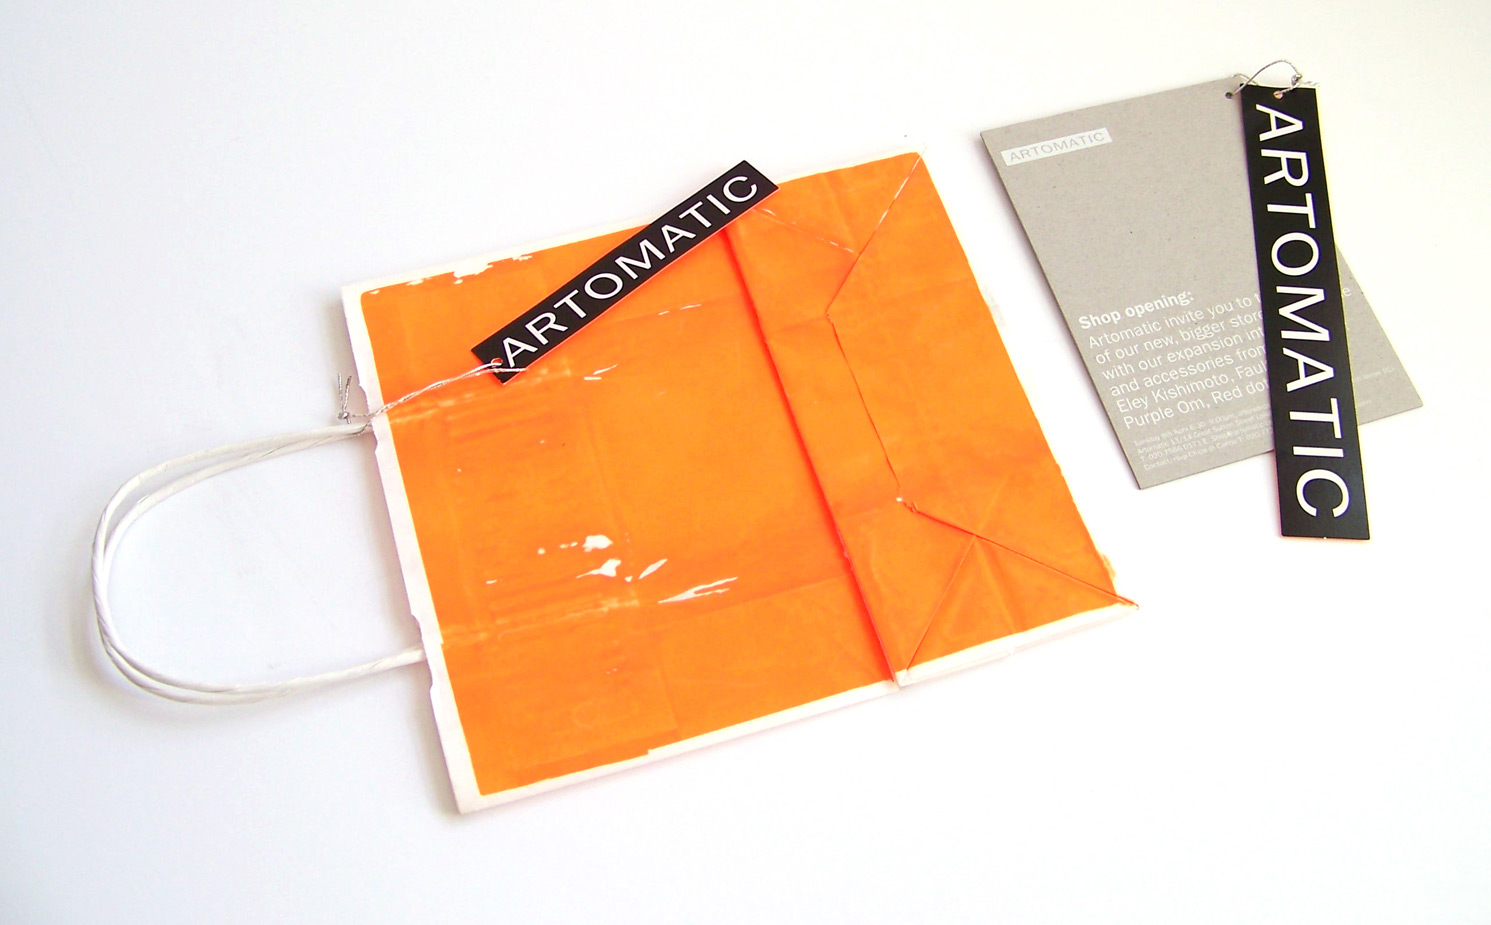 artomatic-bag-invite